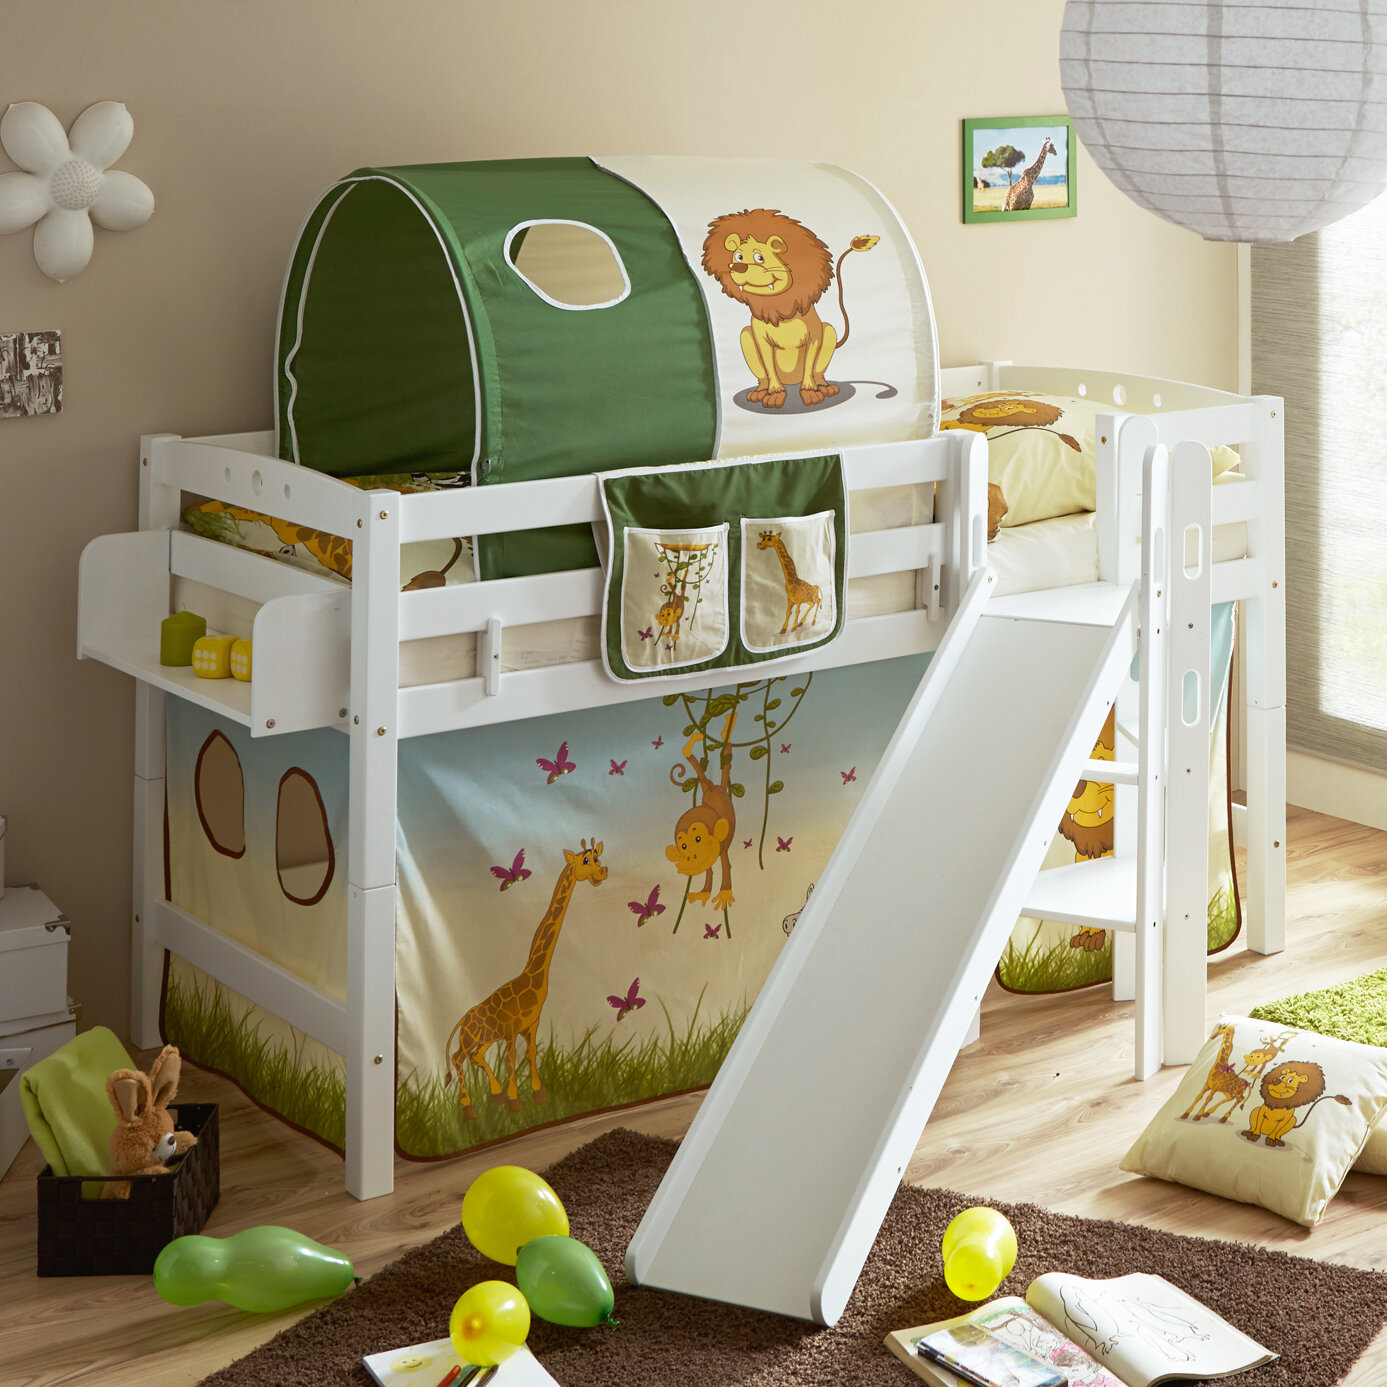 hochbett 200 x 180 fabulous infanskids hochbett mit. Black Bedroom Furniture Sets. Home Design Ideas